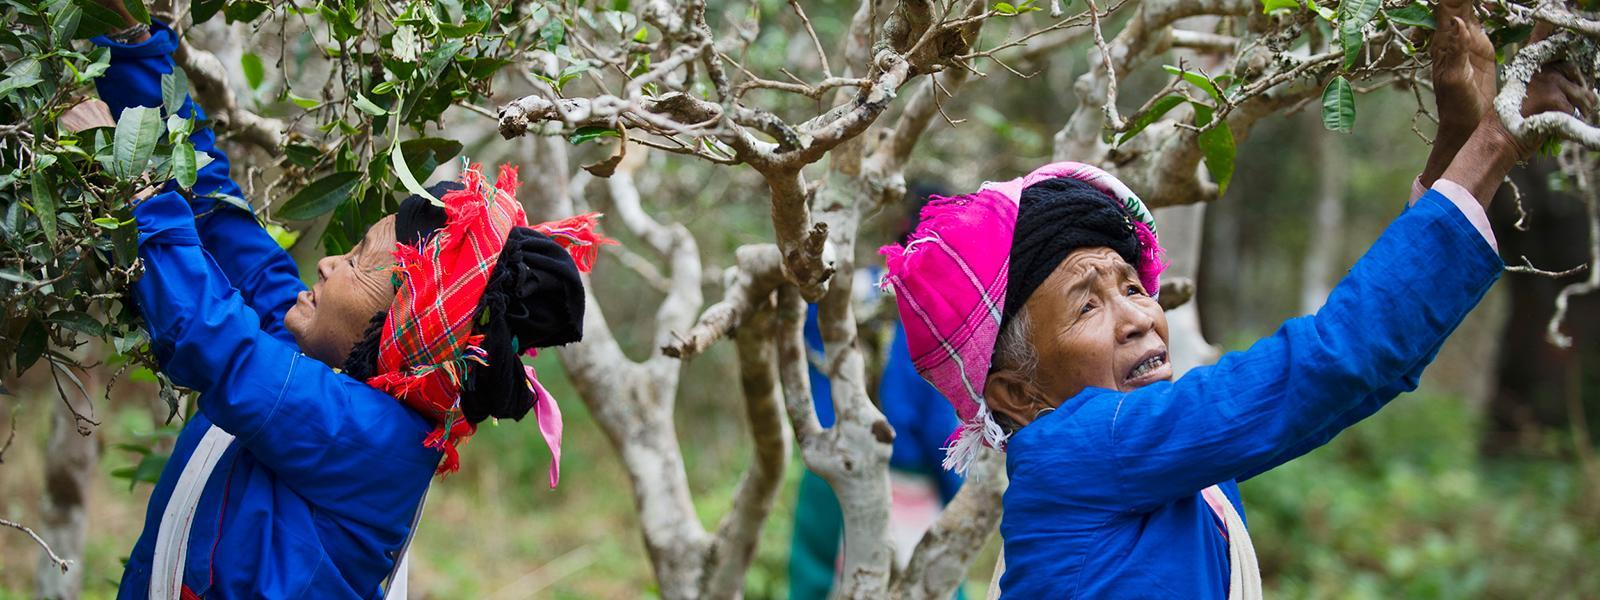 Women picking fruit off trees